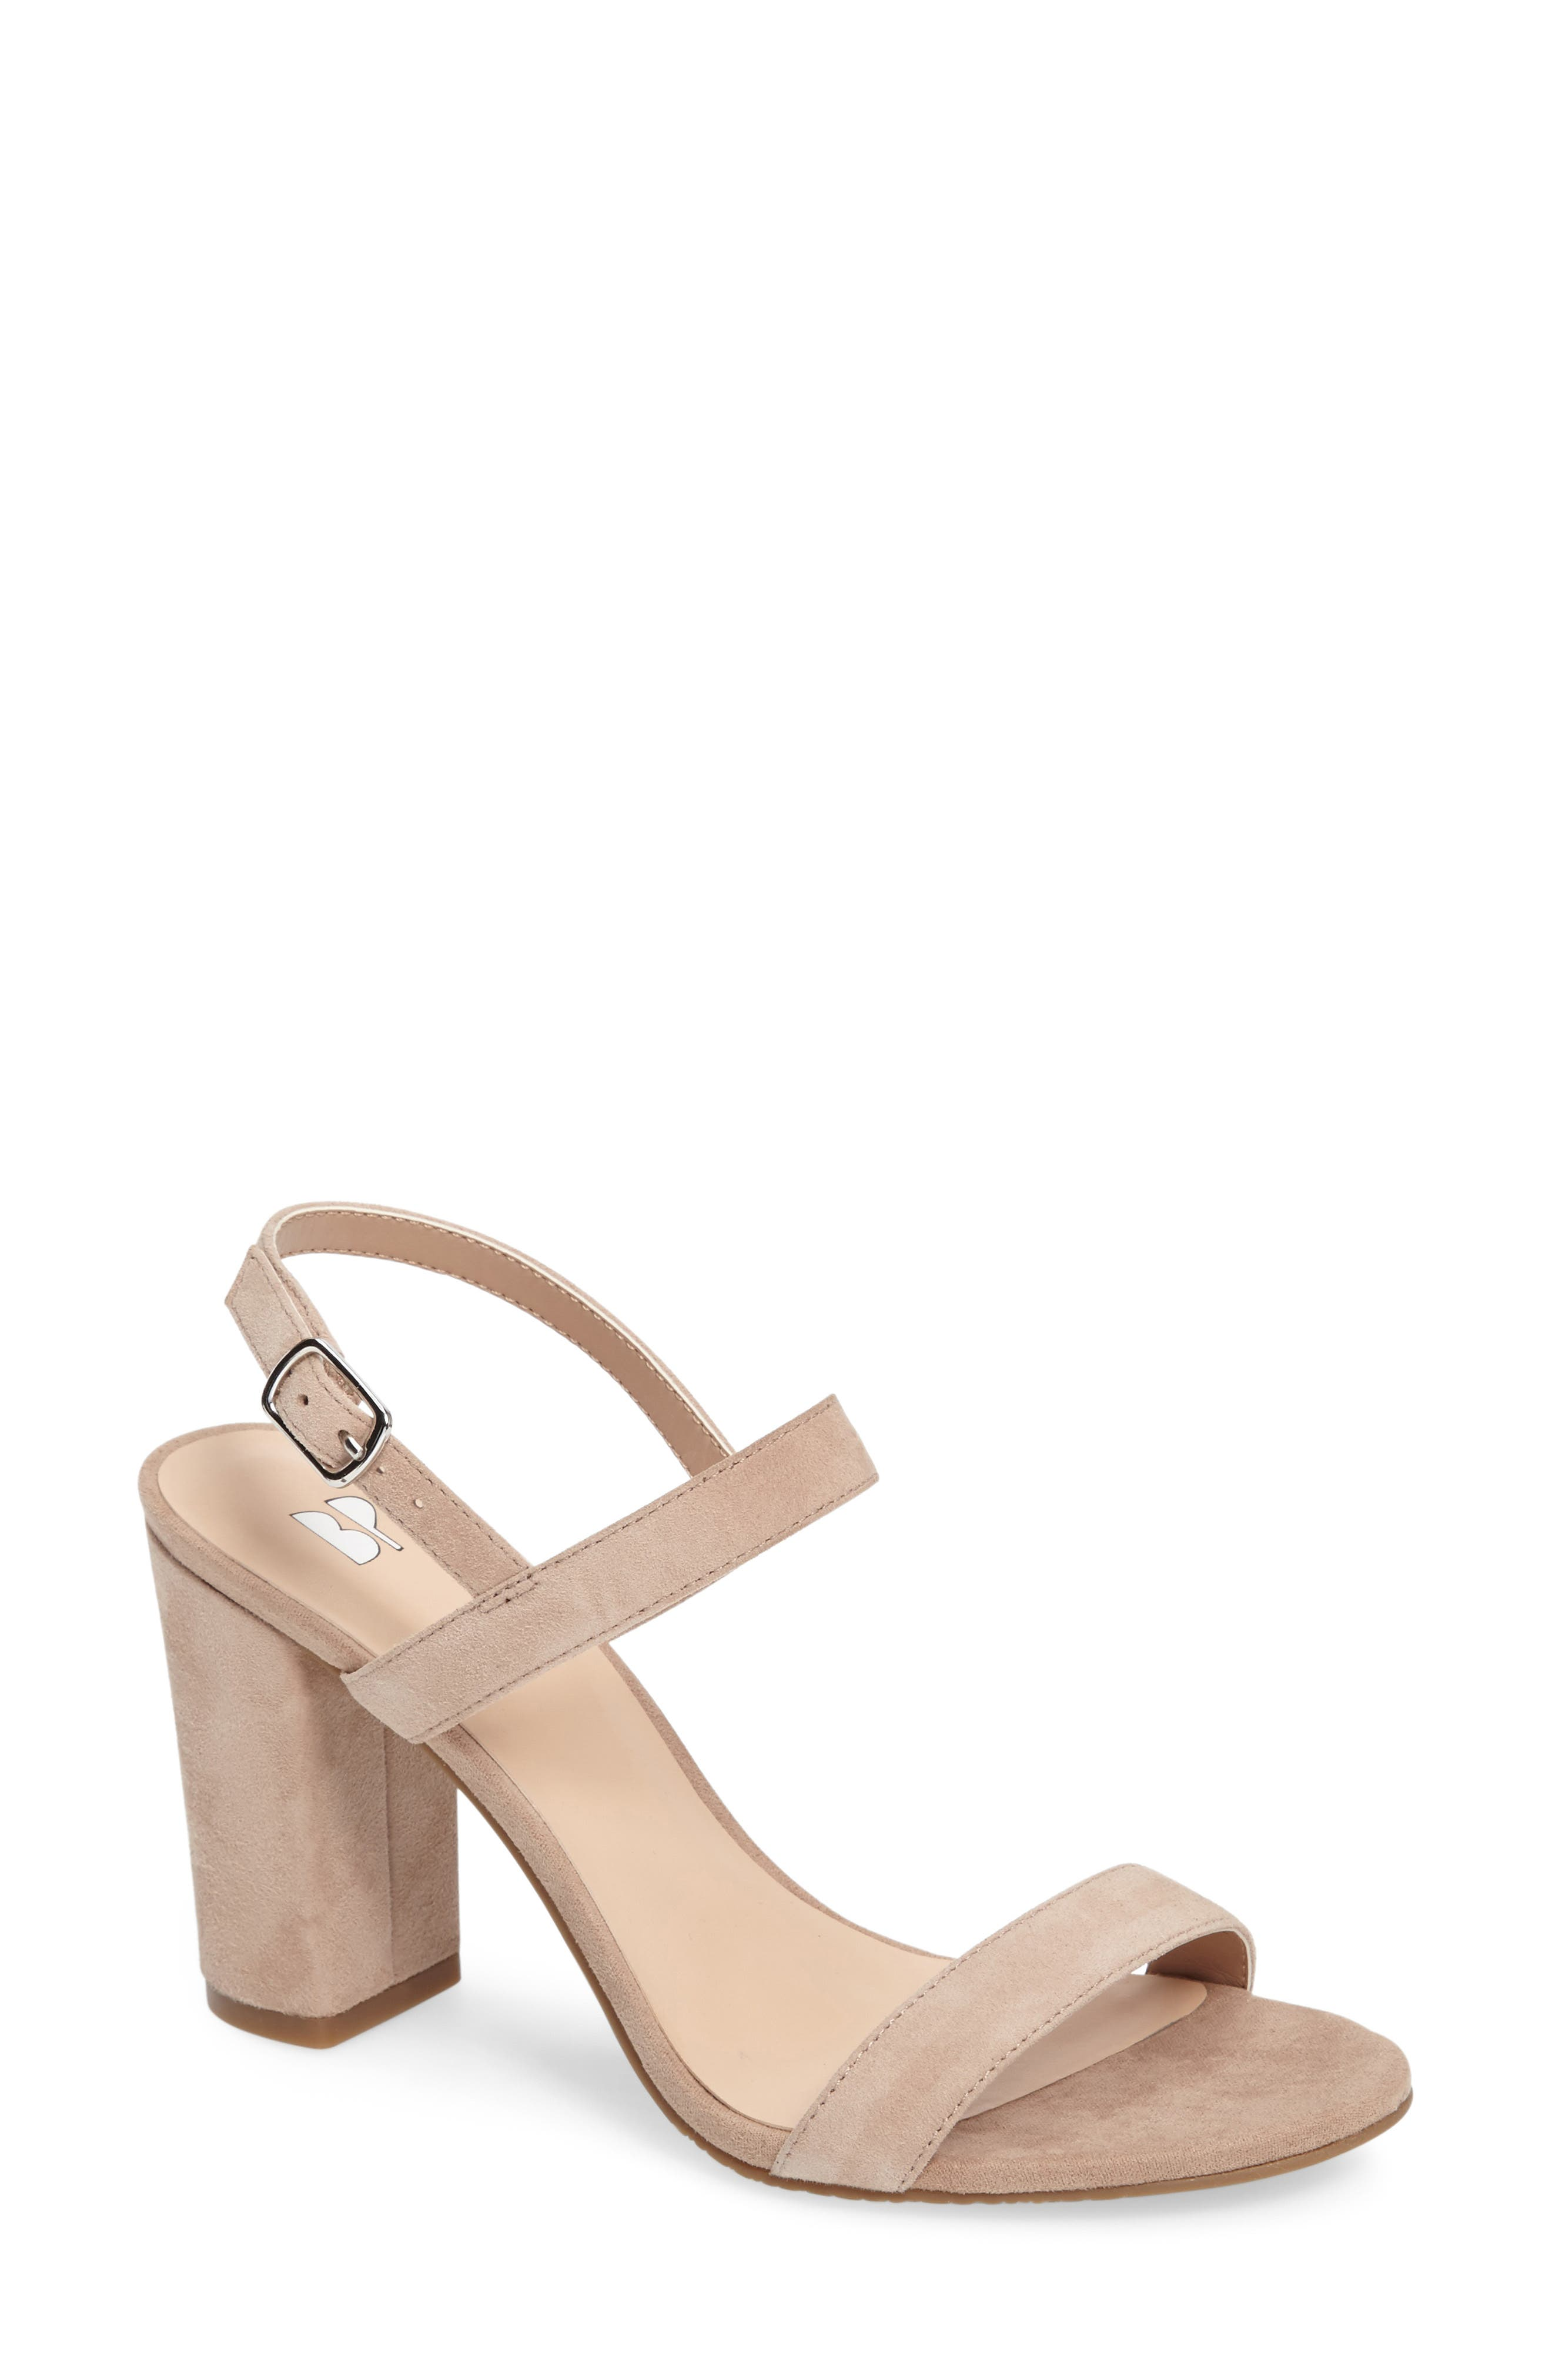 Lula Block Heel Slingback Sandal,                             Main thumbnail 1, color,                             BLUSH SUEDE